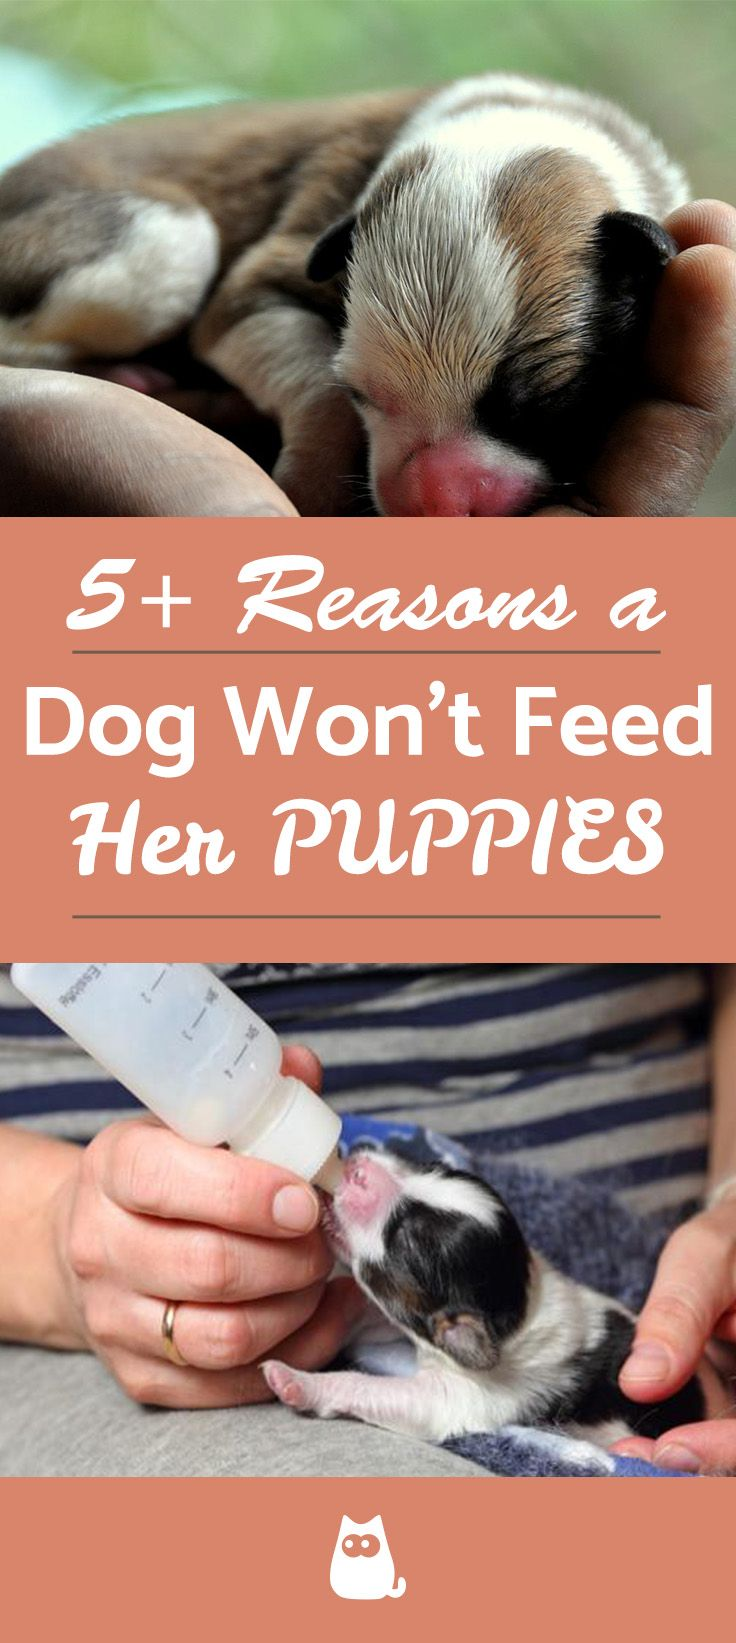 My Dog Won't Feed her Puppies Causes and What to Do